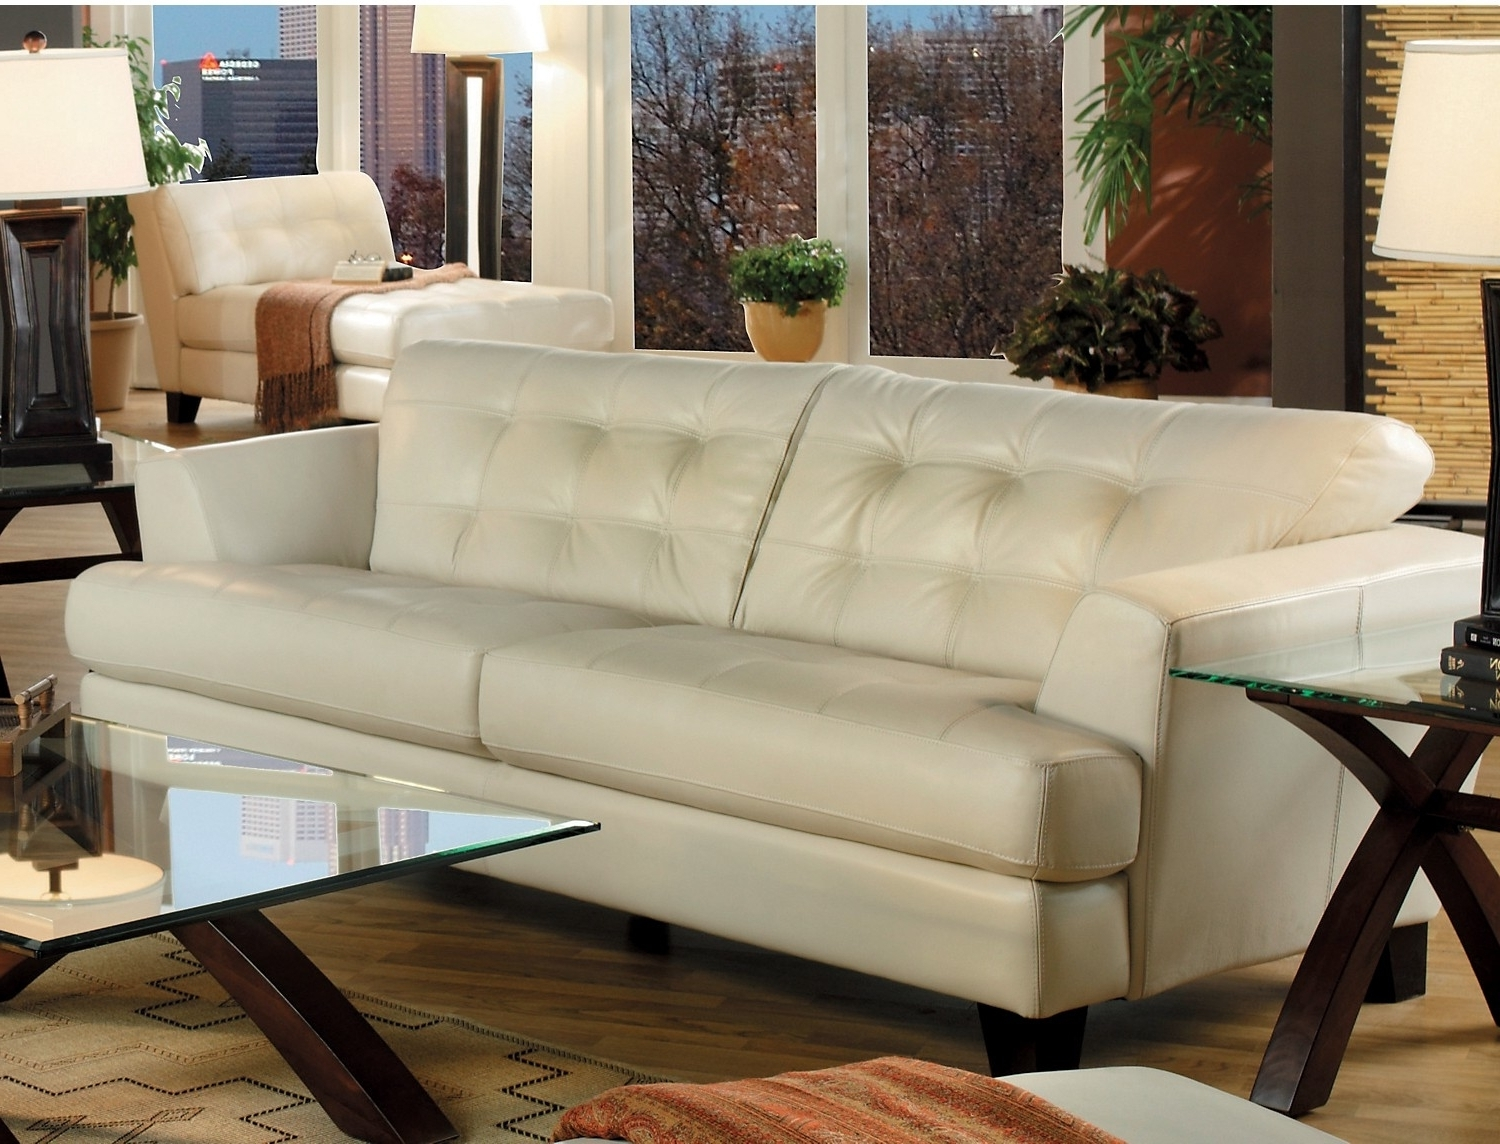 Home Regarding Trendy The Brick Leather Sofas (View 4 of 15)